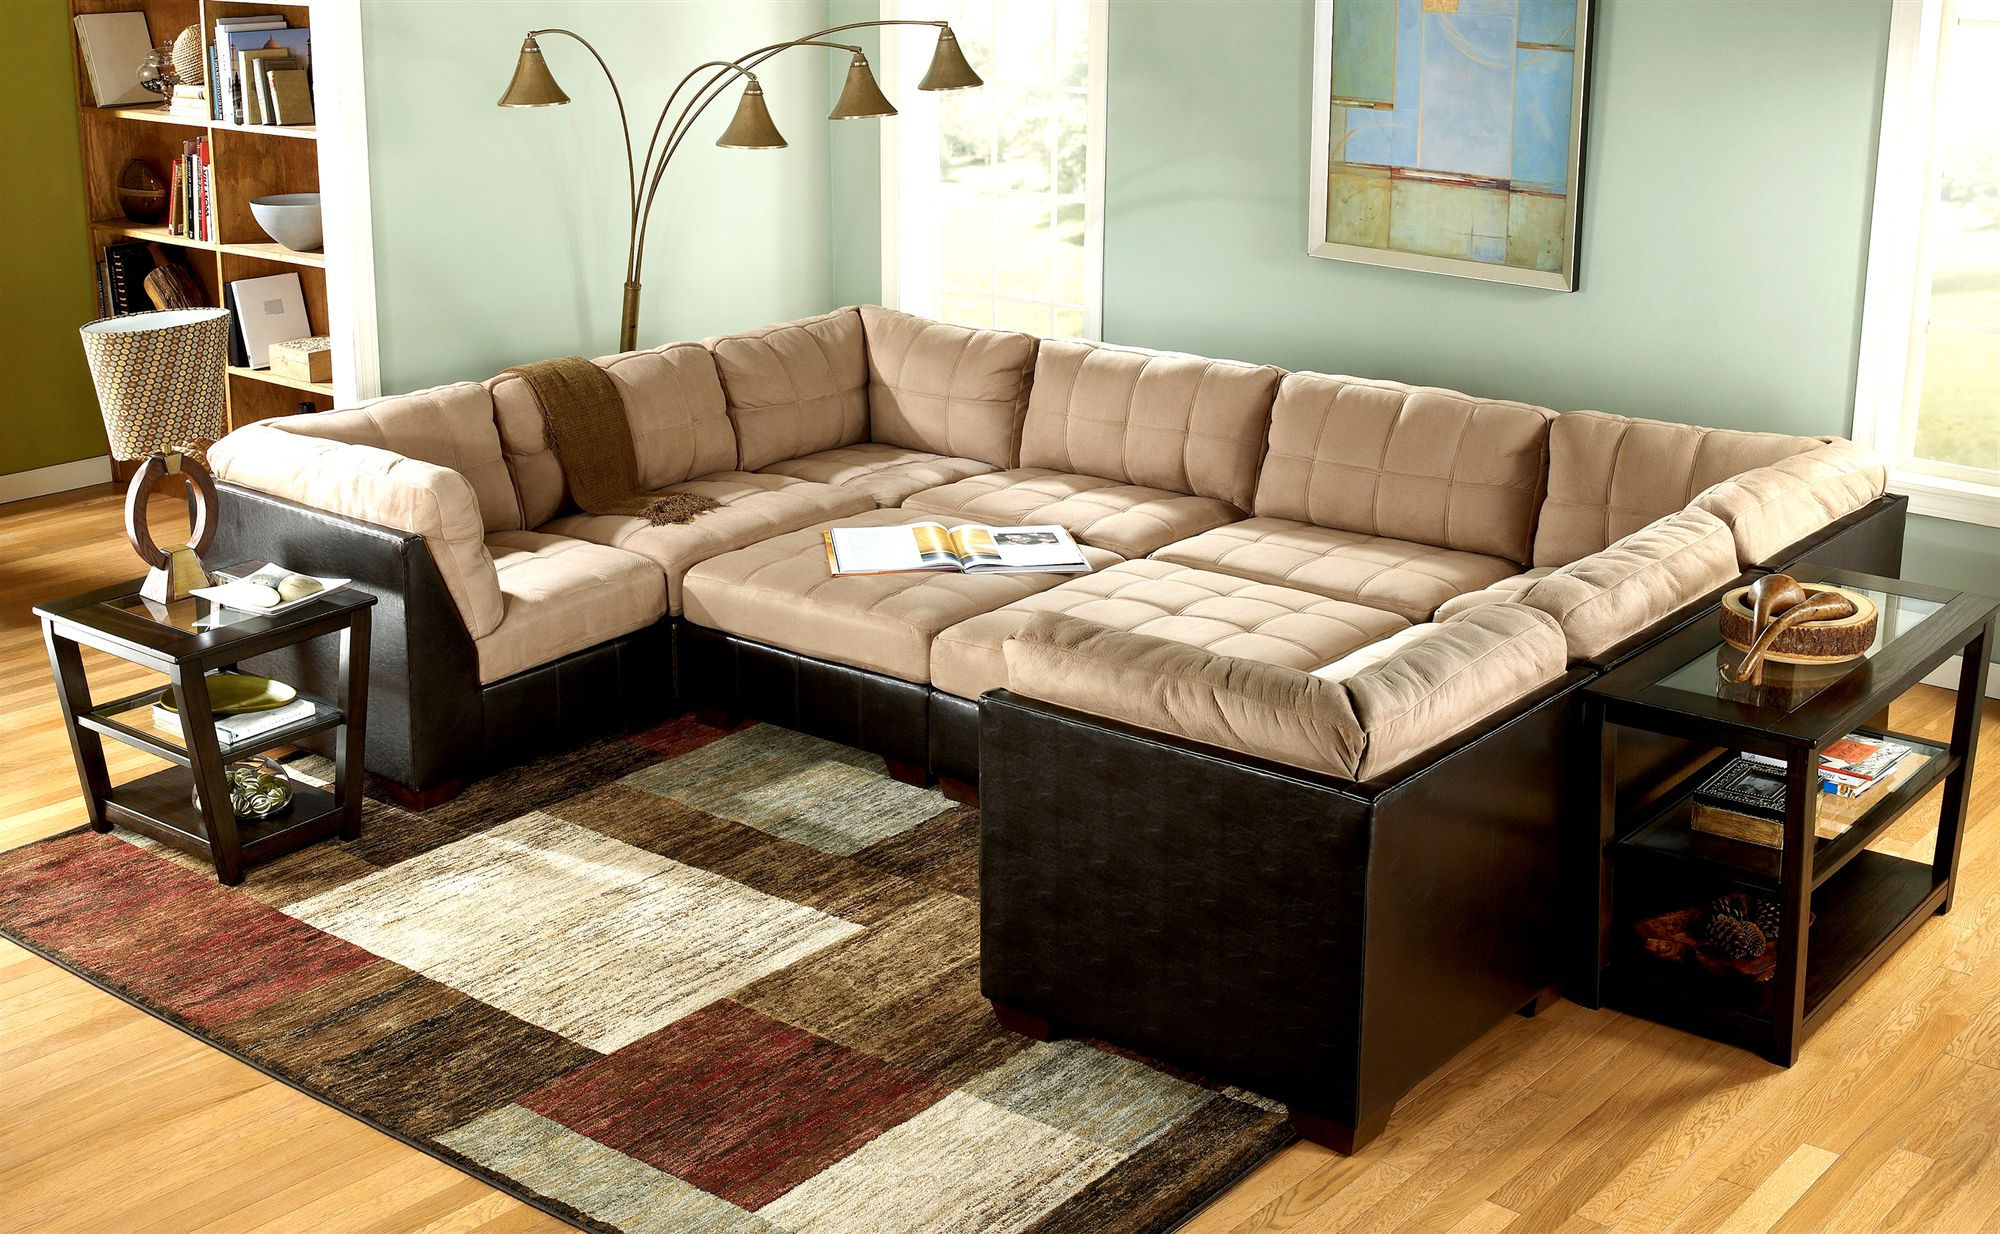 Living room ideas with sectionals sofa for small living room roy home design - Furniture living room design ...